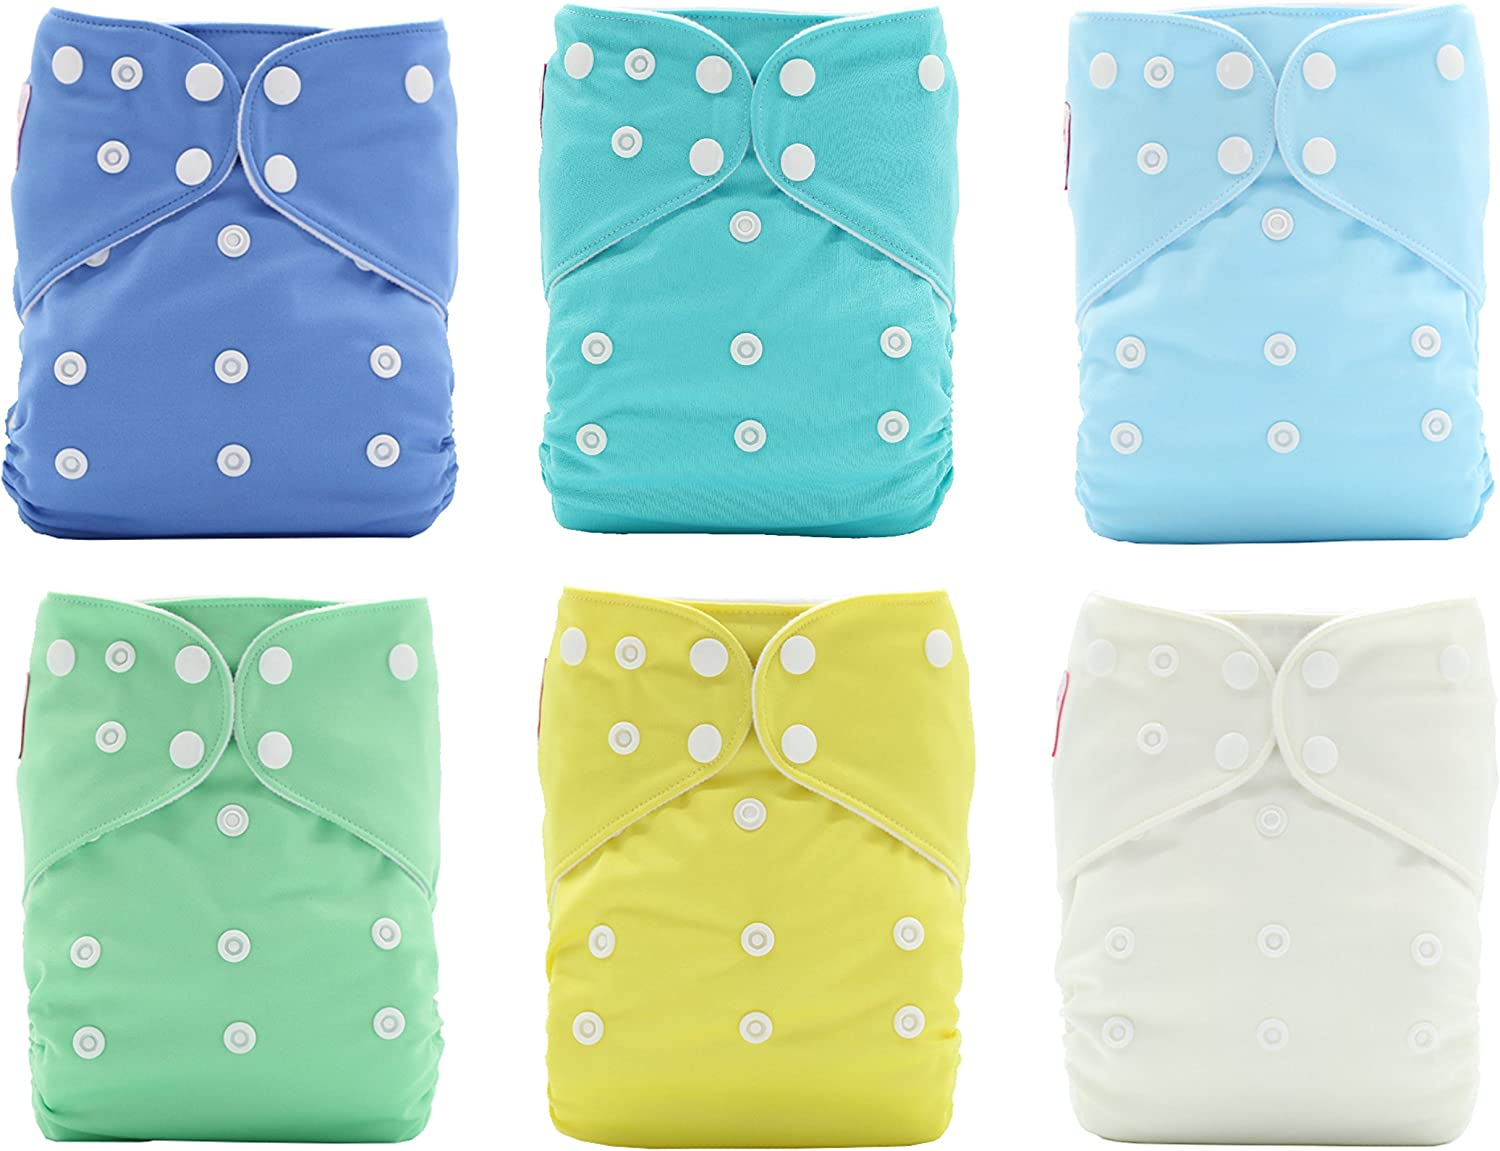 Gentle on Baby Skin 6 Washable Inserts for Leakproof Protection Environmentally Friendly Reusable Cloth Baby Diapers for Boys /& Girls - PINK /& BLUE Aqua A Set of 6 Pcs - Double Pockets 8-35lbs+